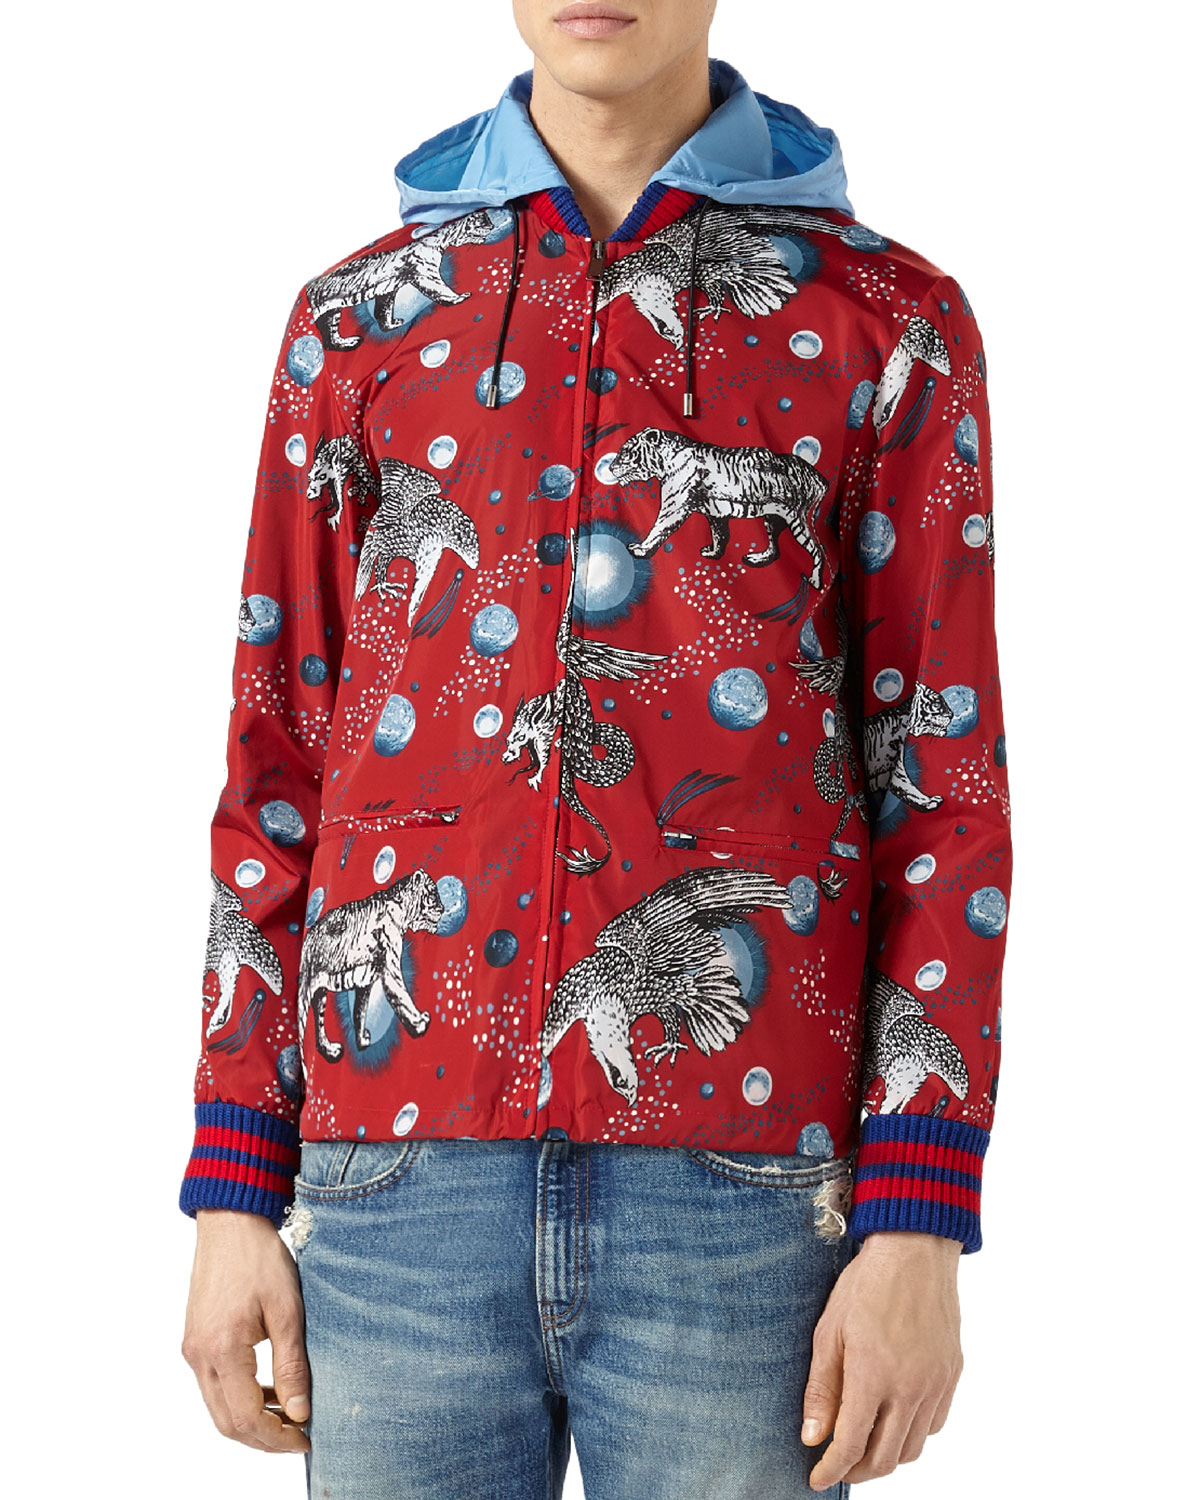 720e752b4 Space Animals Rain Jacket, Red